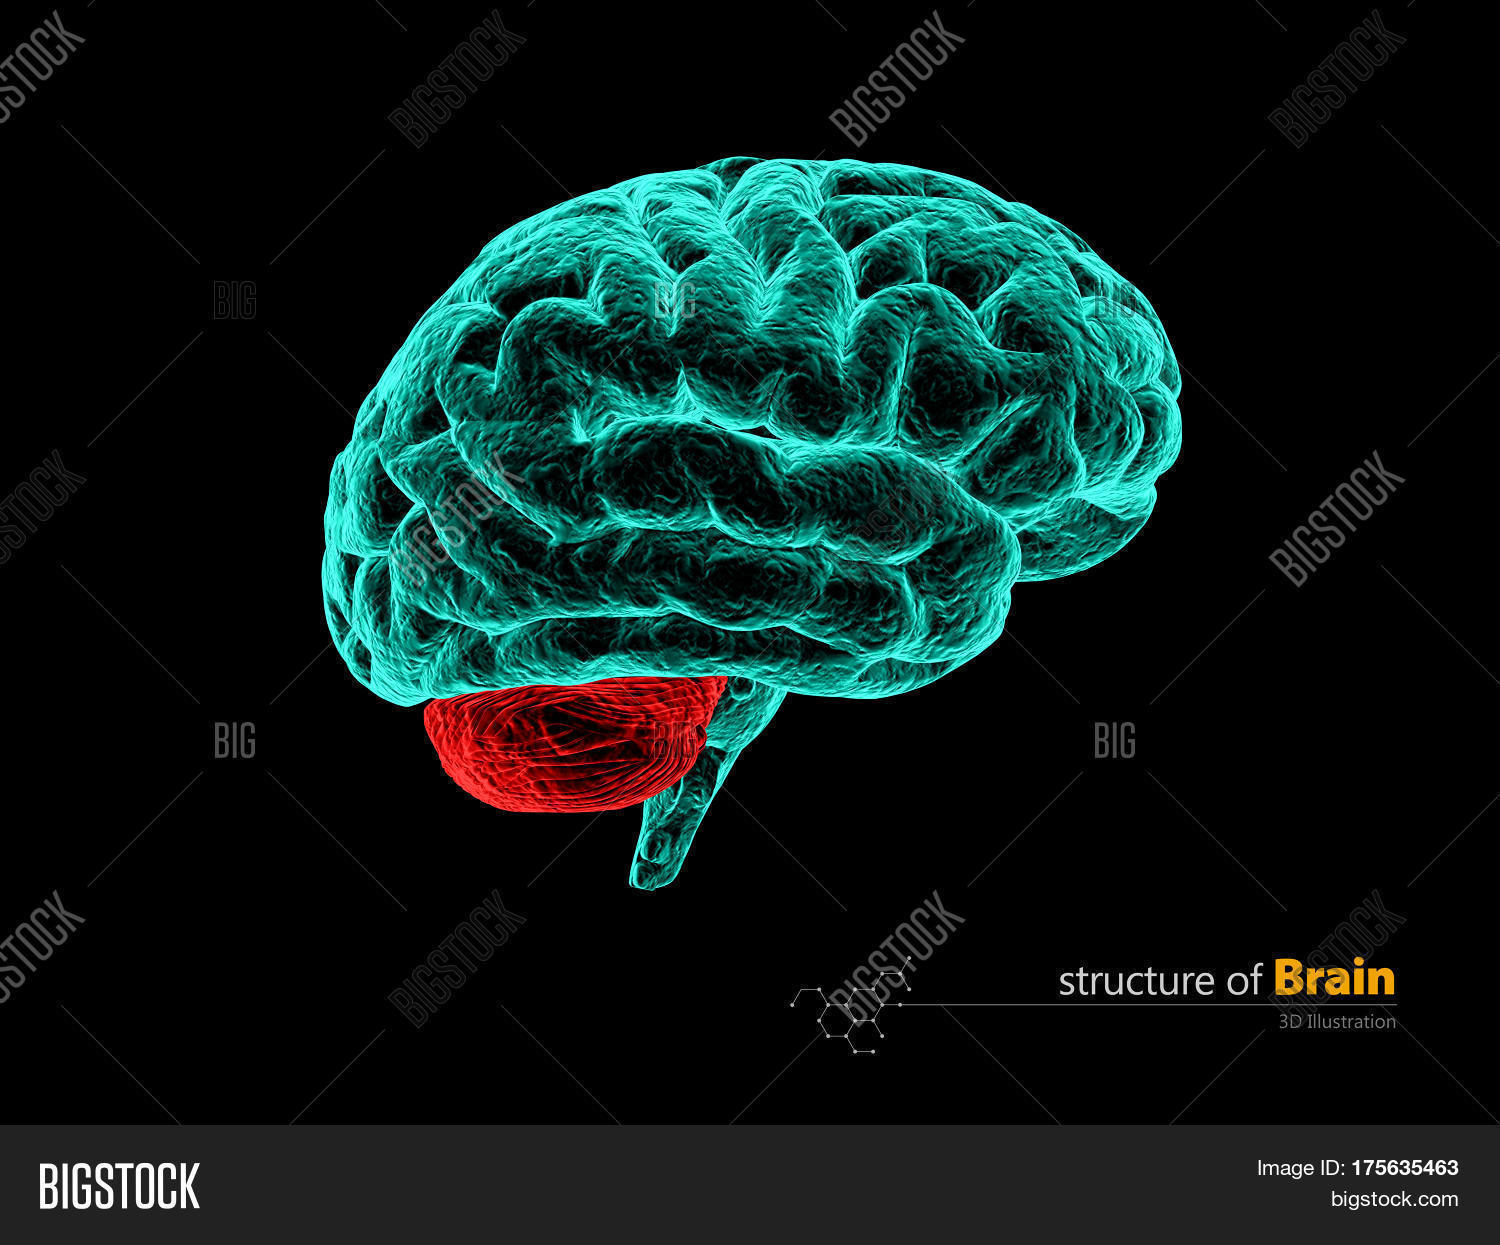 Human Brain Cerebelum Image & Photo (Free Trial) | Bigstock